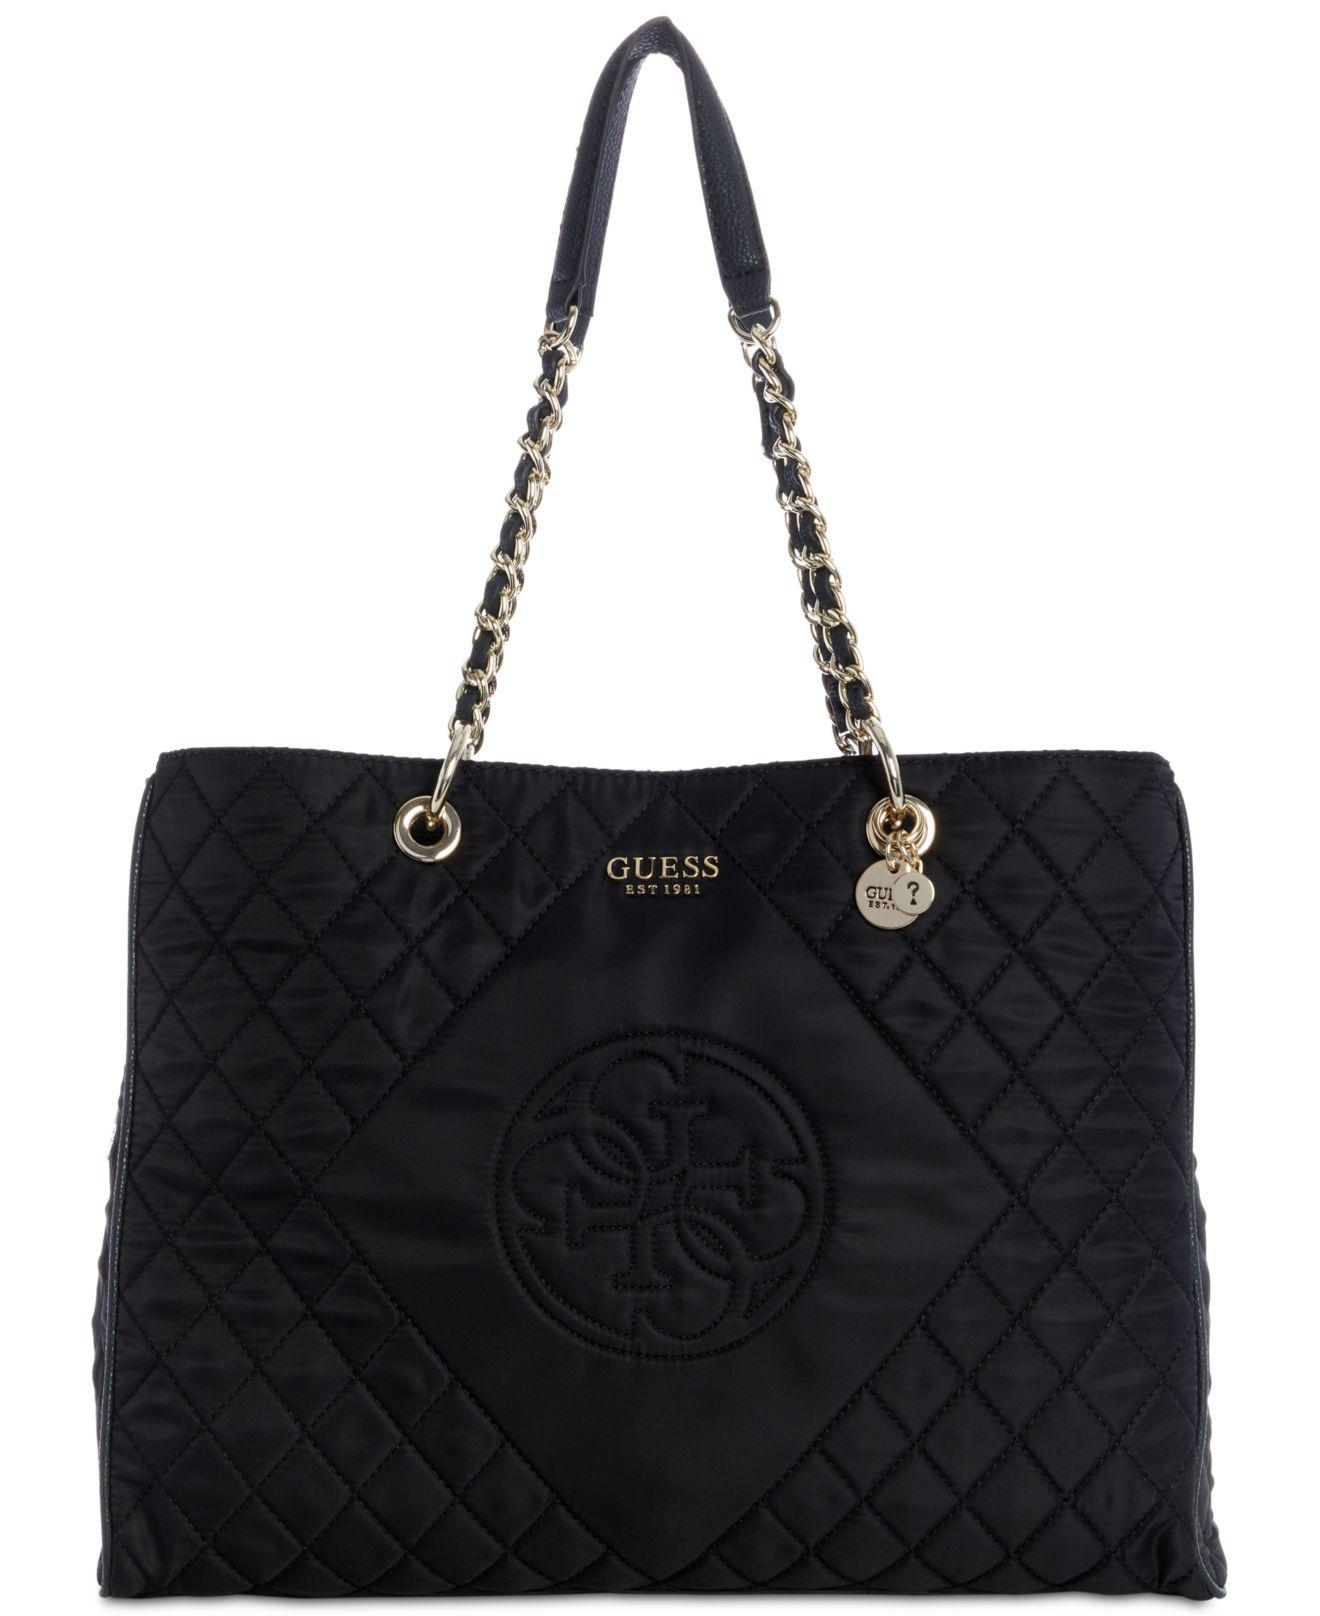 35f34824c607 Guess Black Sweet Candy Nylon Tote